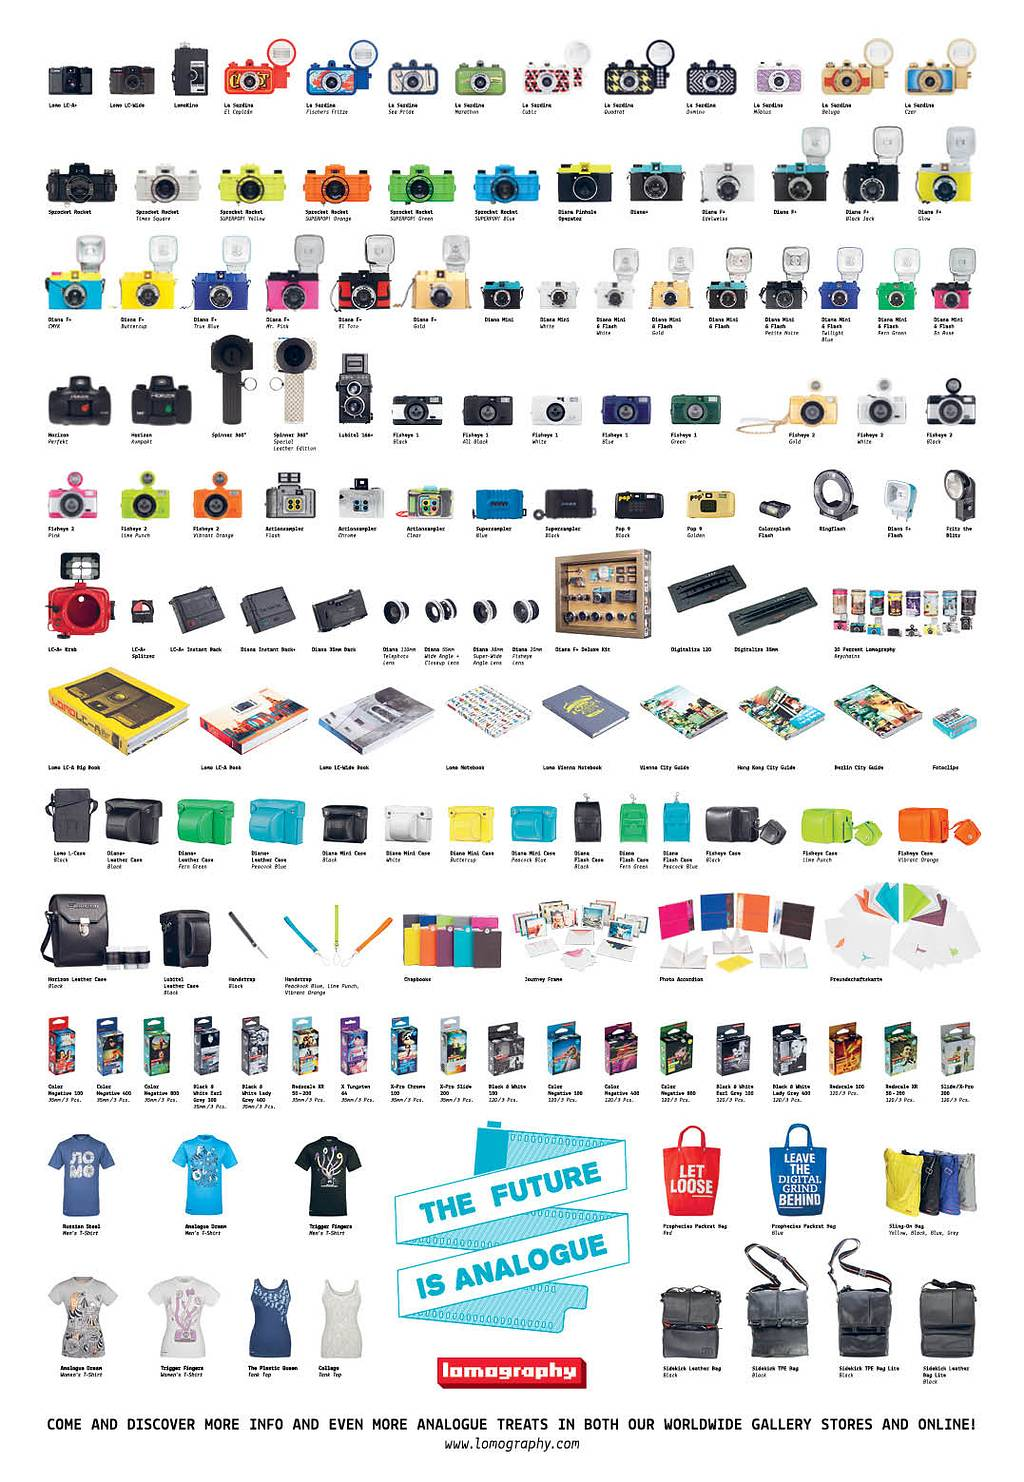 Get a Free Poster and 10% Off Coupon On Your Next Purchase!